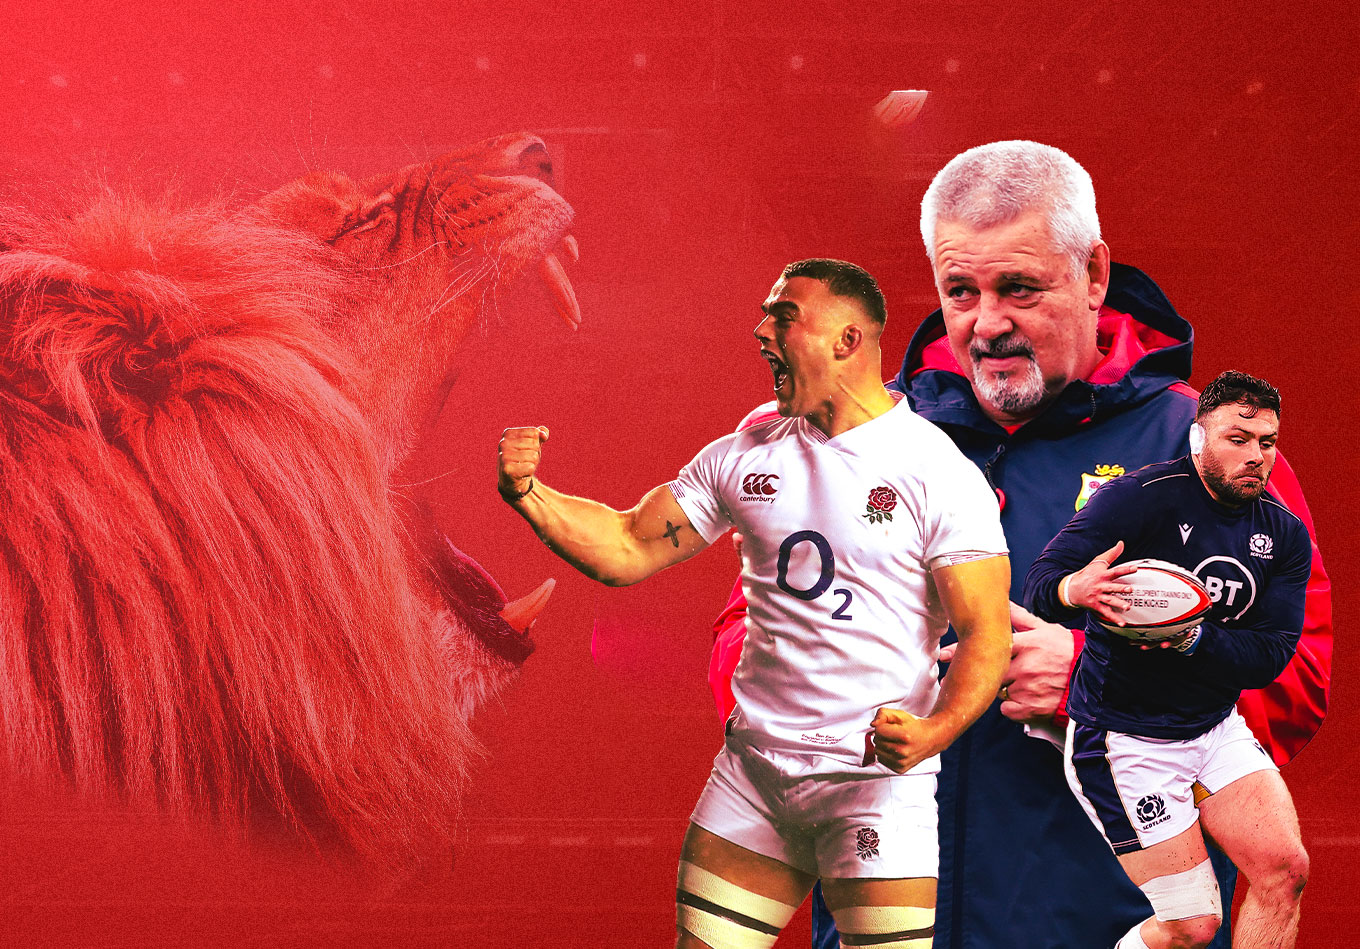 2021 Lions Squad Selection: Who Goes to South Africa?